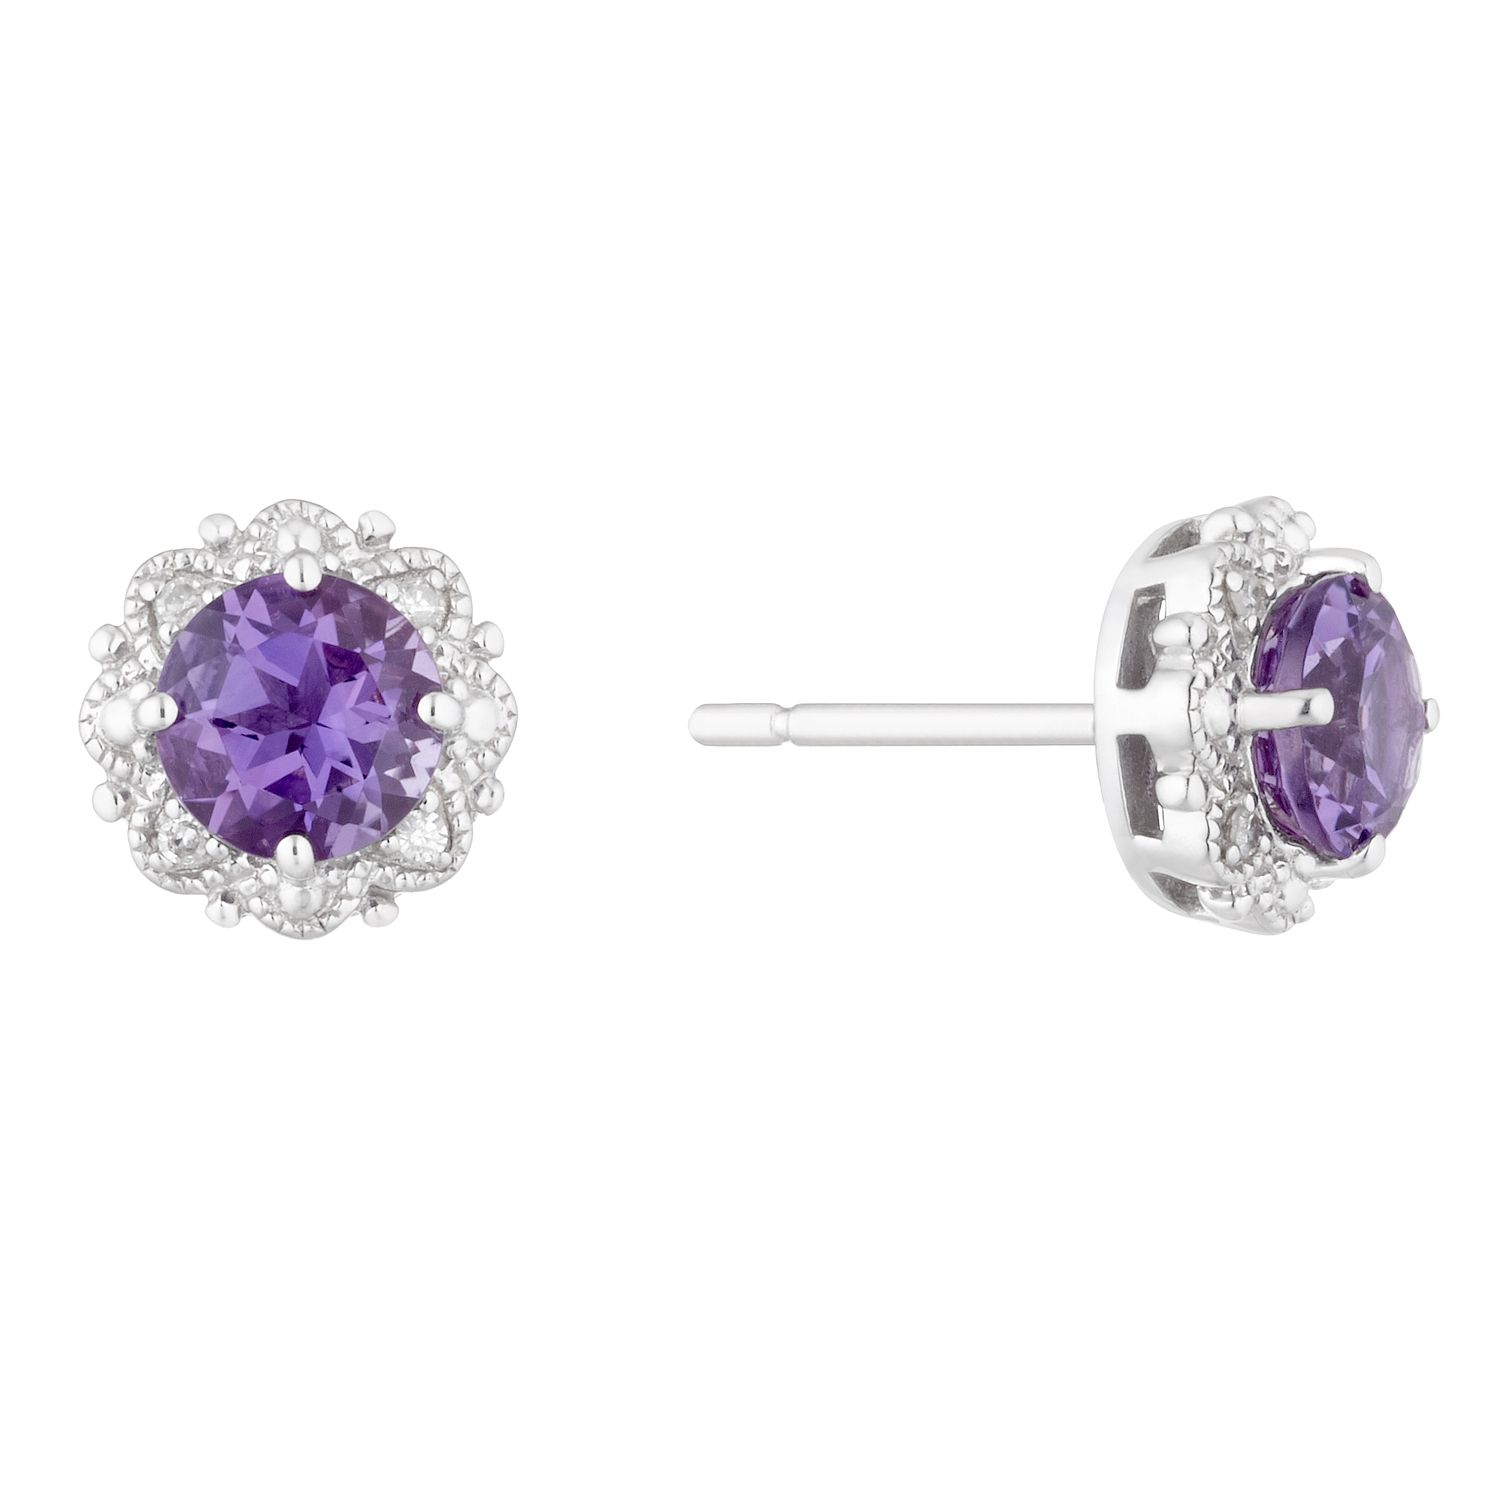 Sterling Silver Amethyst & Diamond Stud Earrings - Product number 5032652